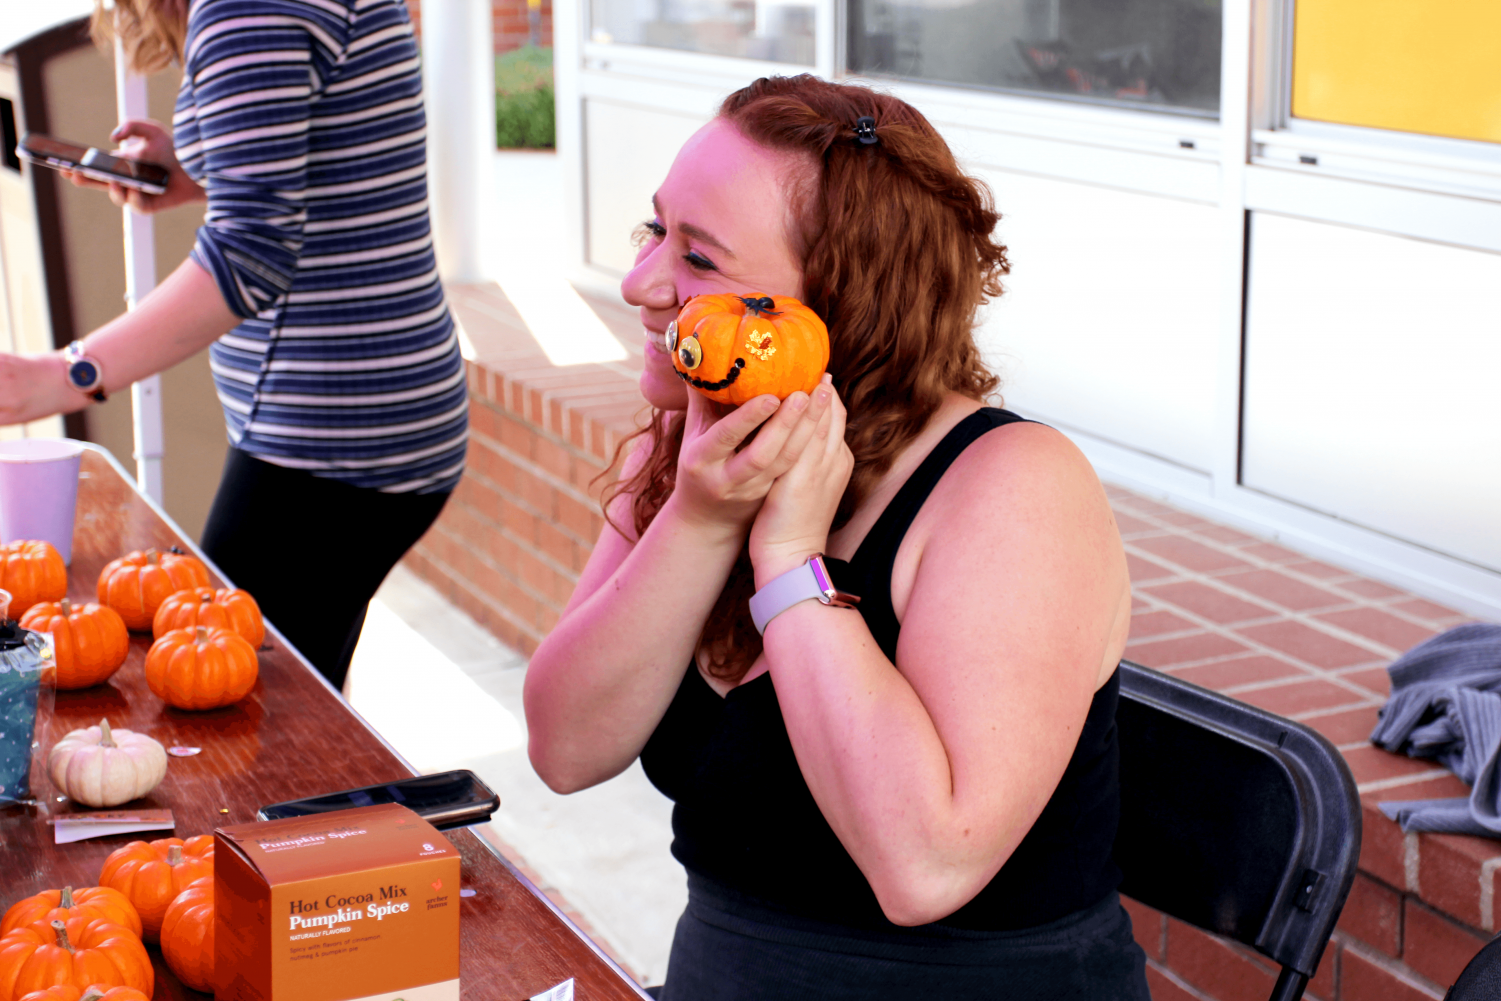 Melissa Tobey, junior, poses with her decorated pumpkin on the Spine on Tuesday Oct. 15.